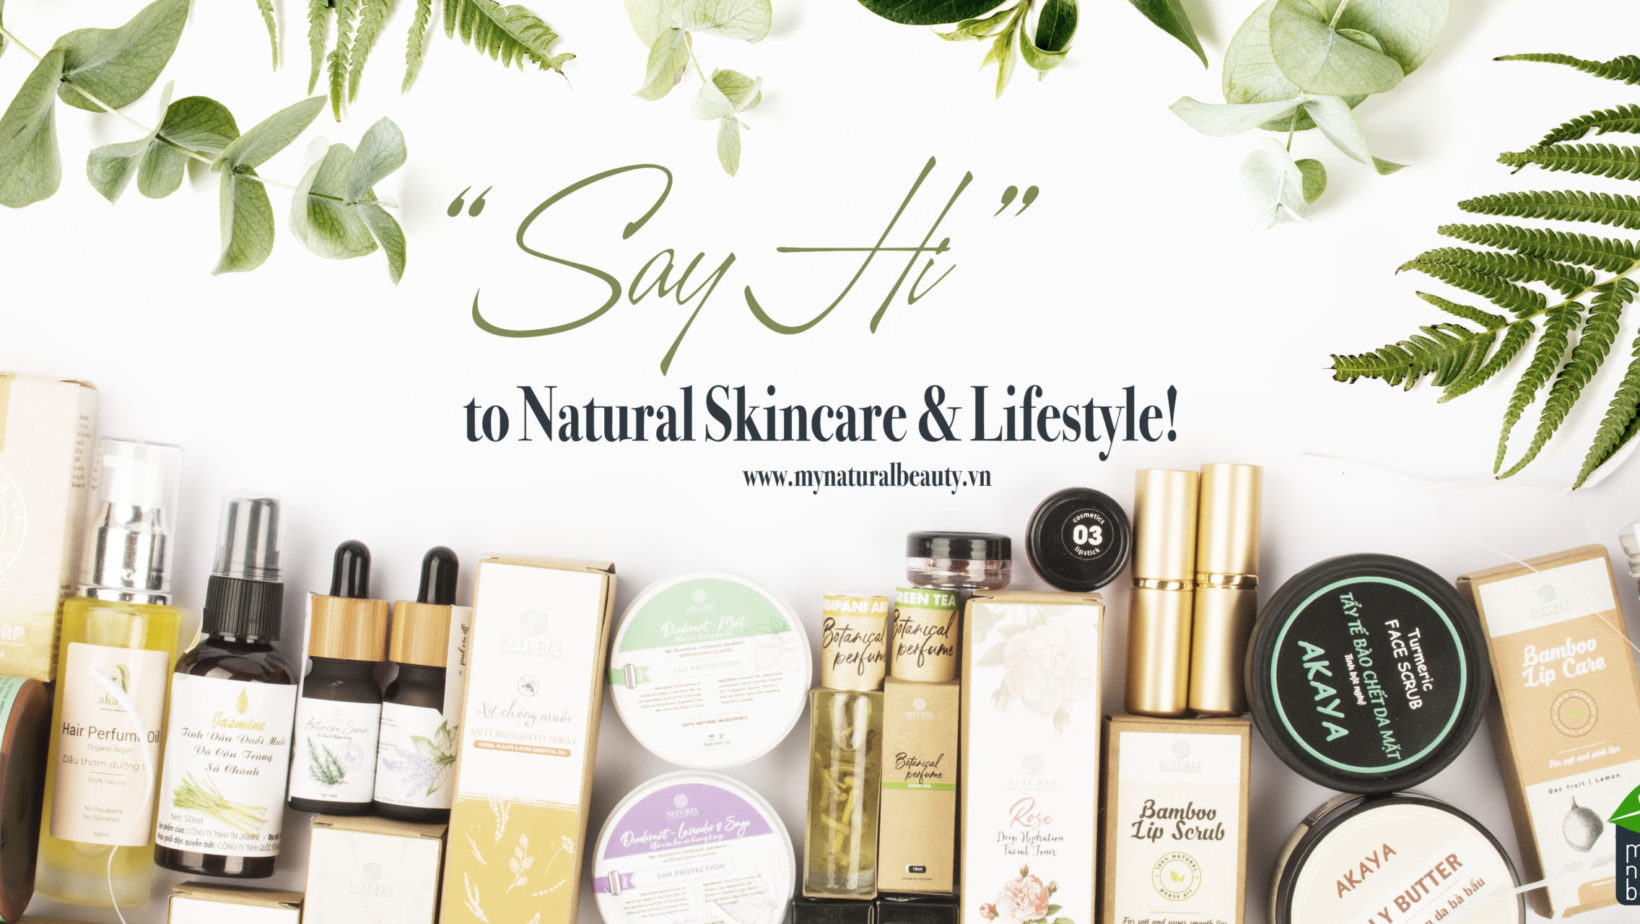 Banniere _Say hi to natural skincare and lifestyle_